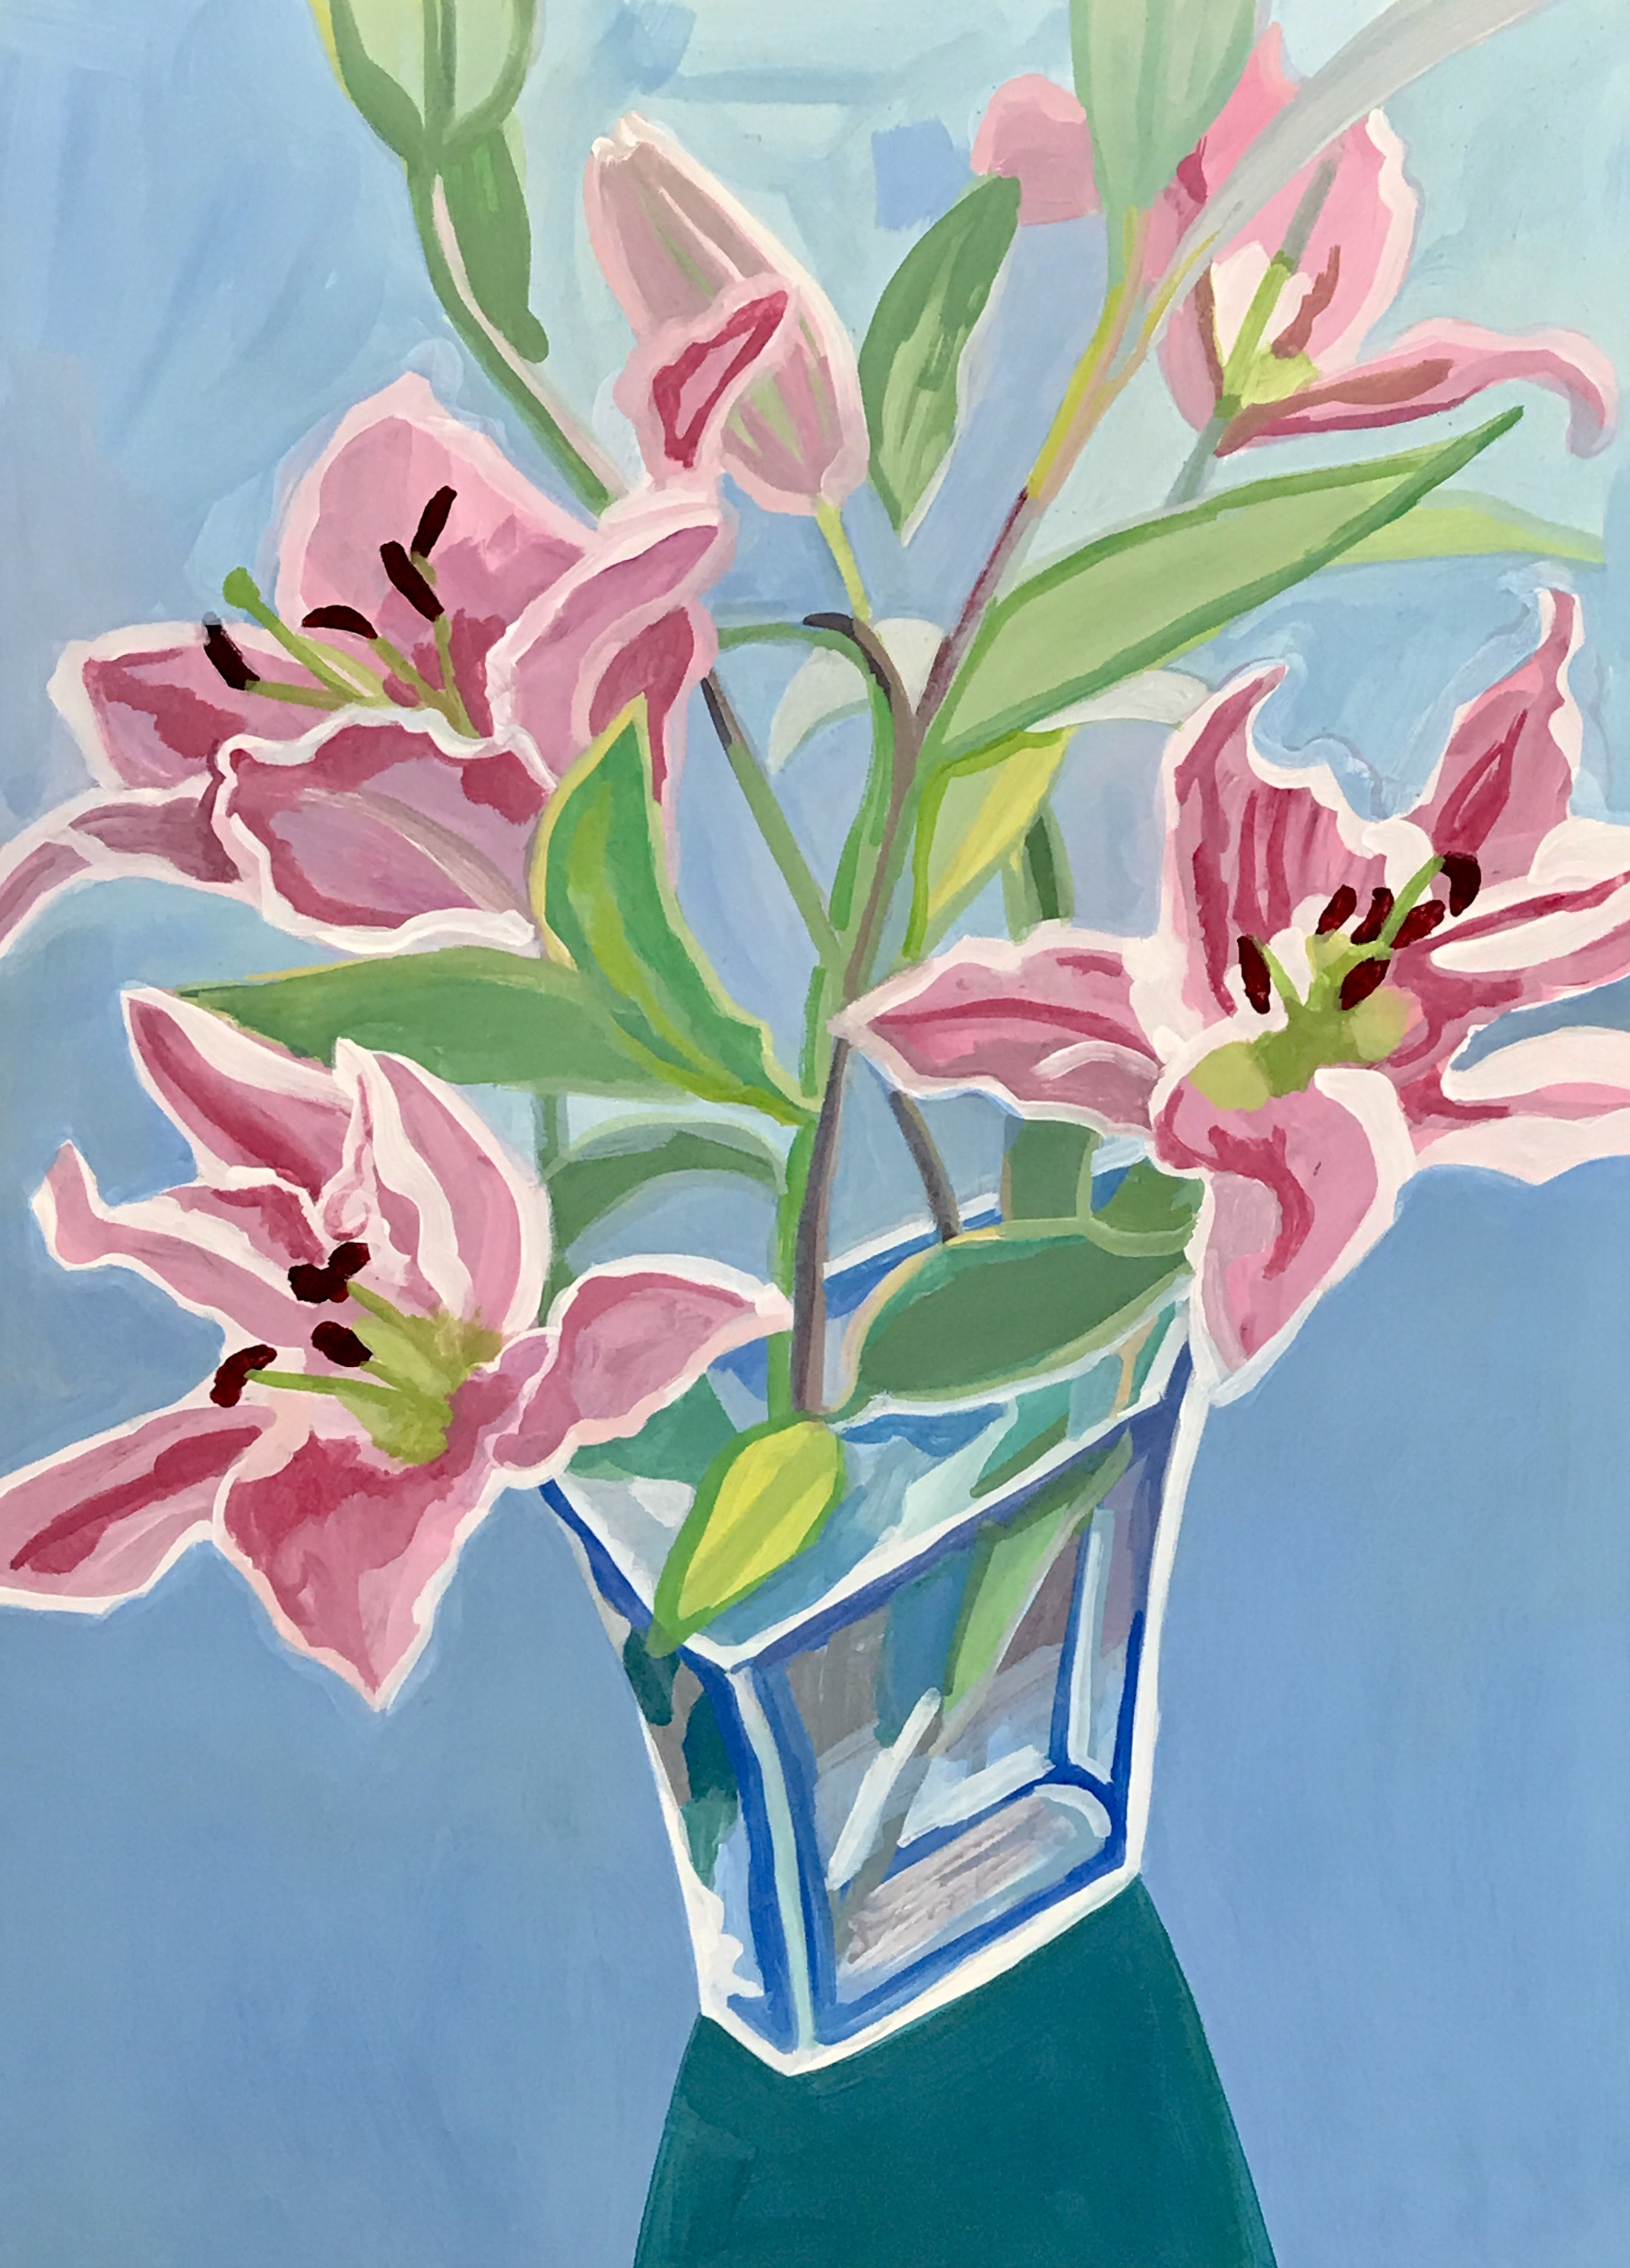 Flowers  in a vase,